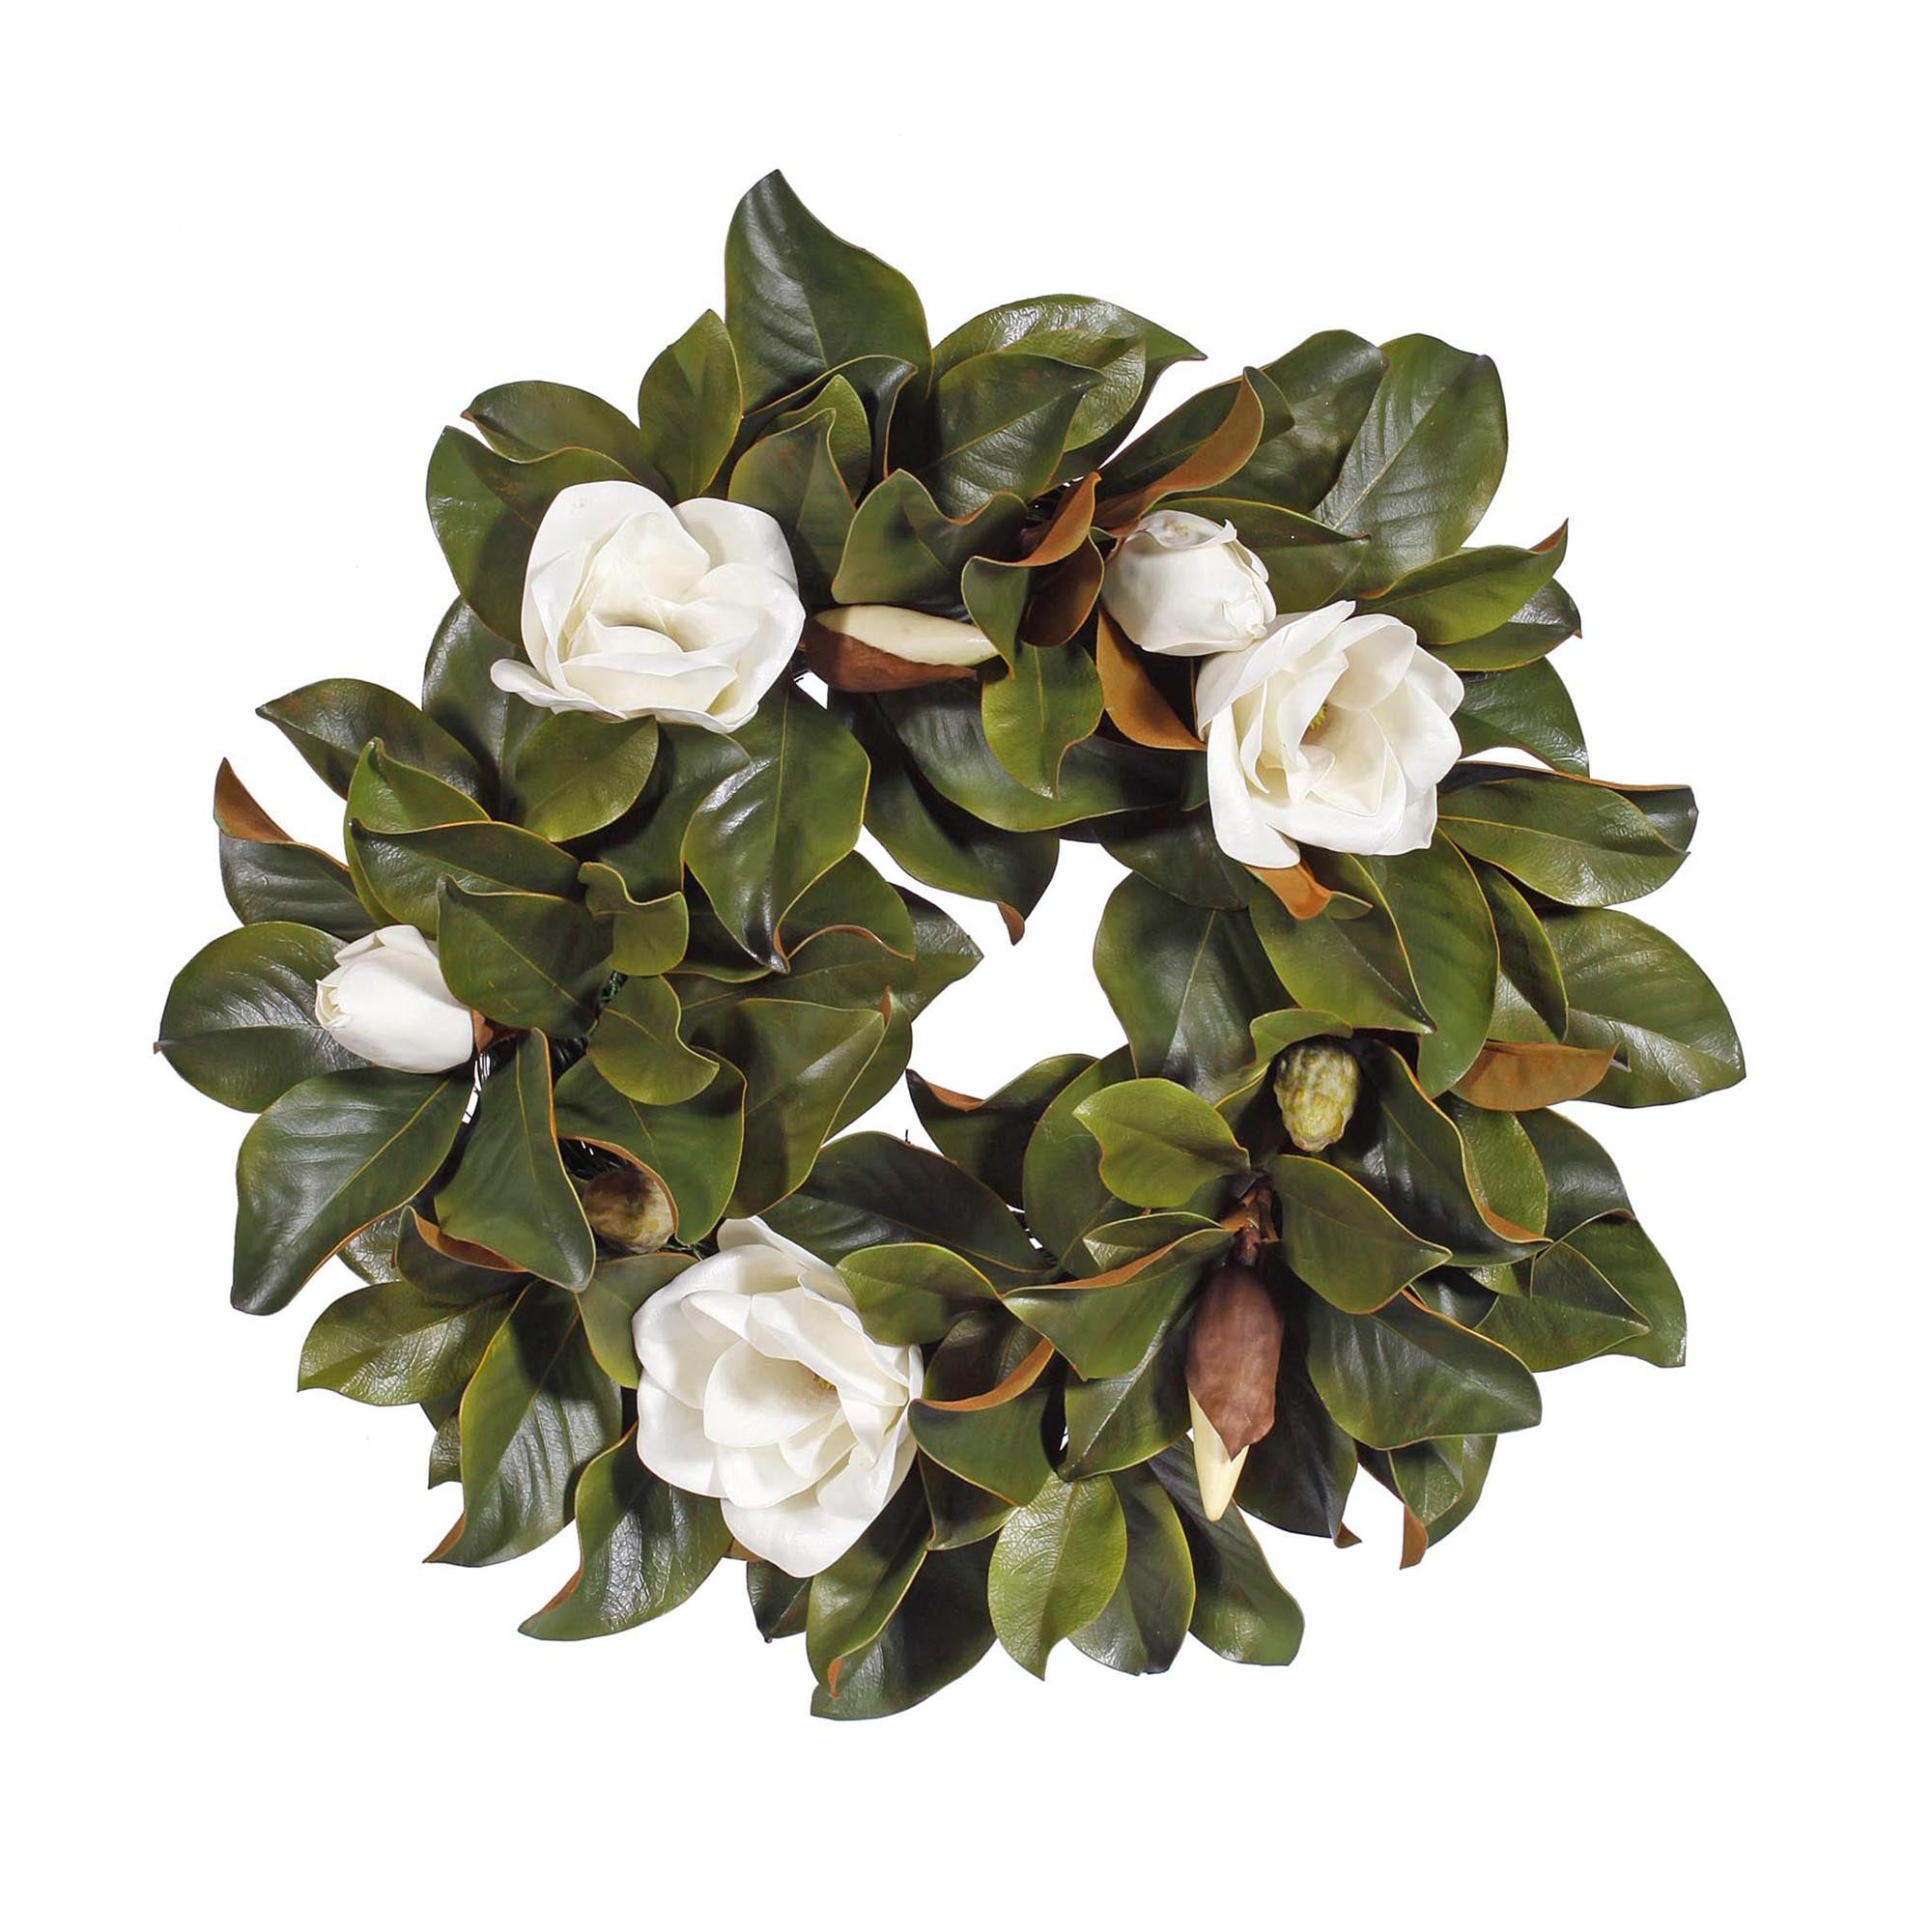 WREATH MAGNOLIA 24""